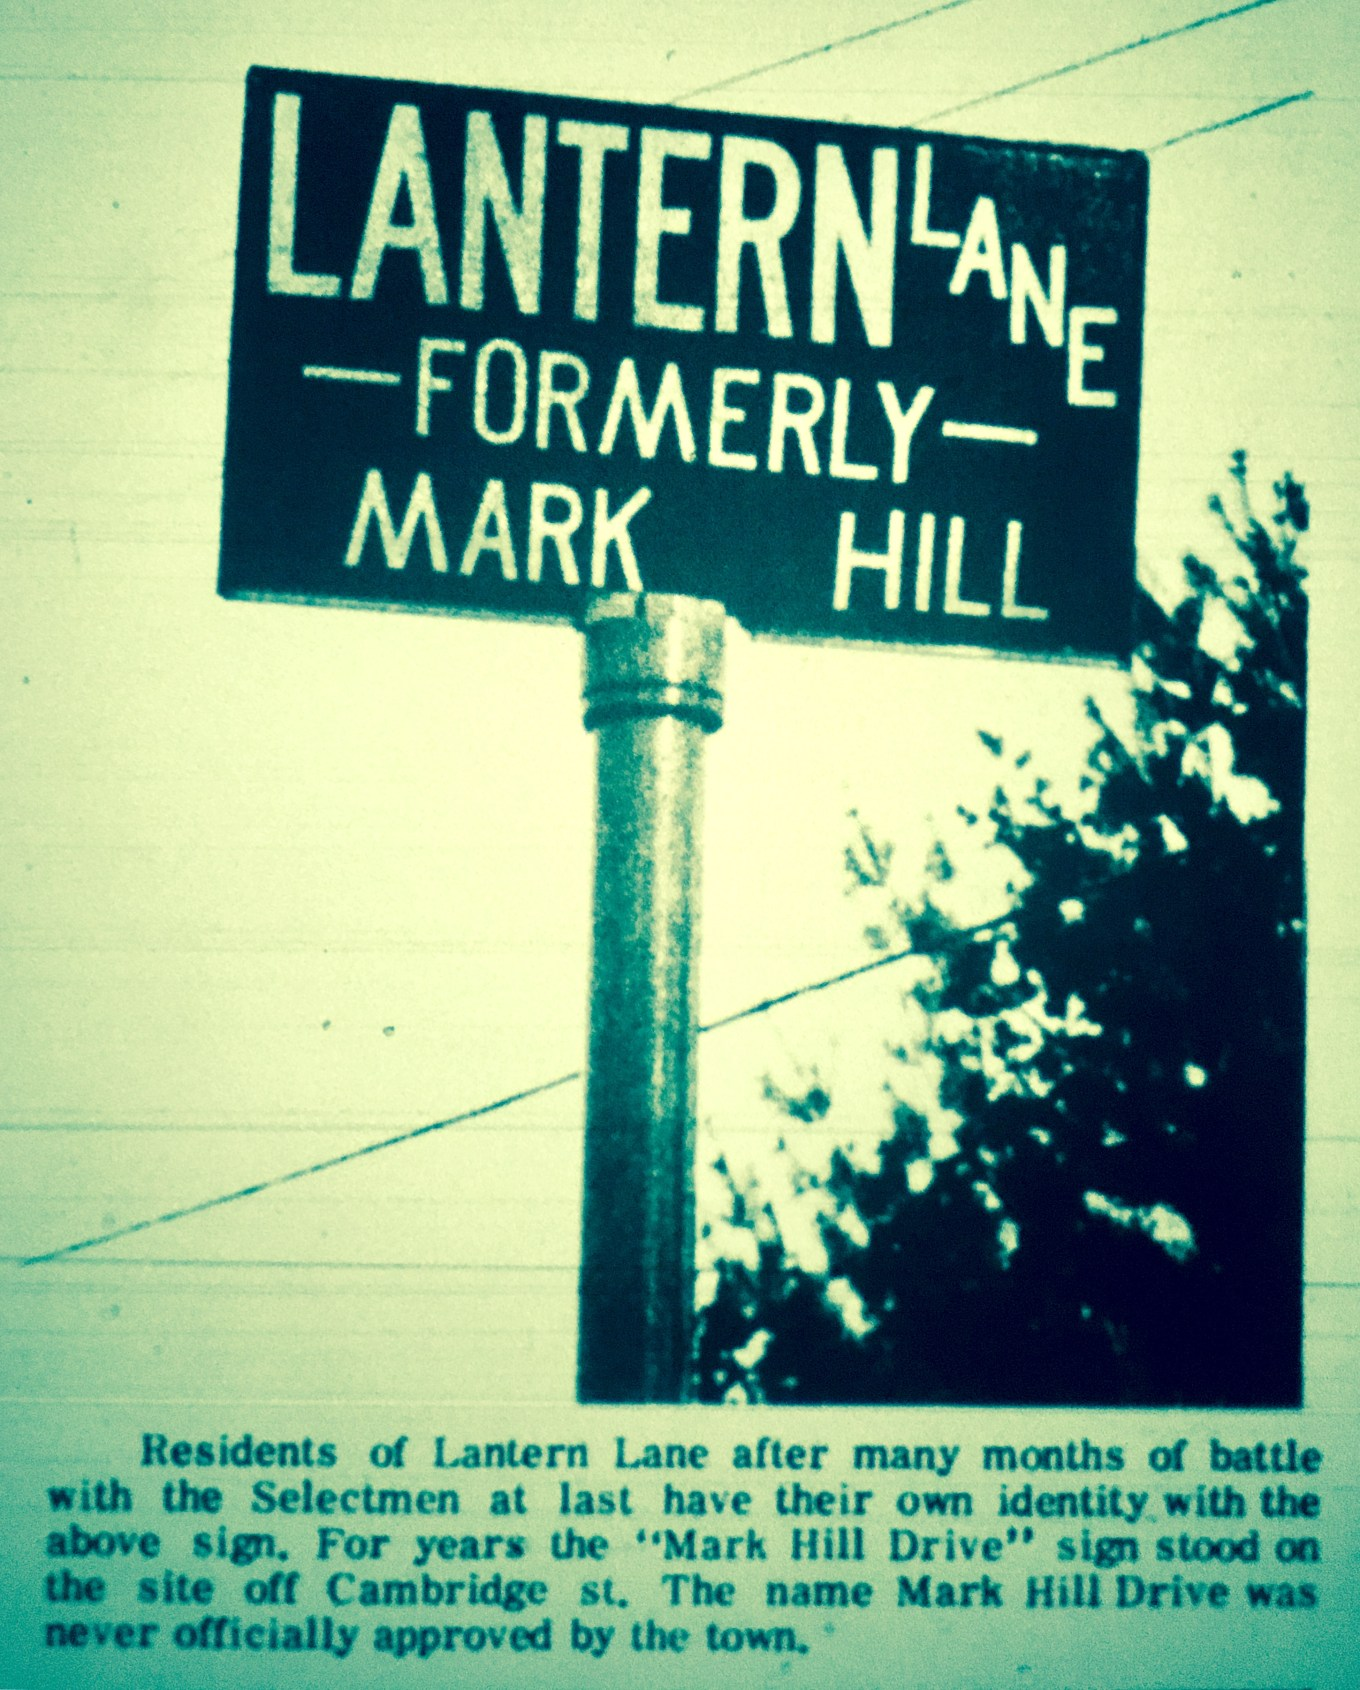 Lantern Lane/Mark Hill subdivision sign, Burlington MA 1966